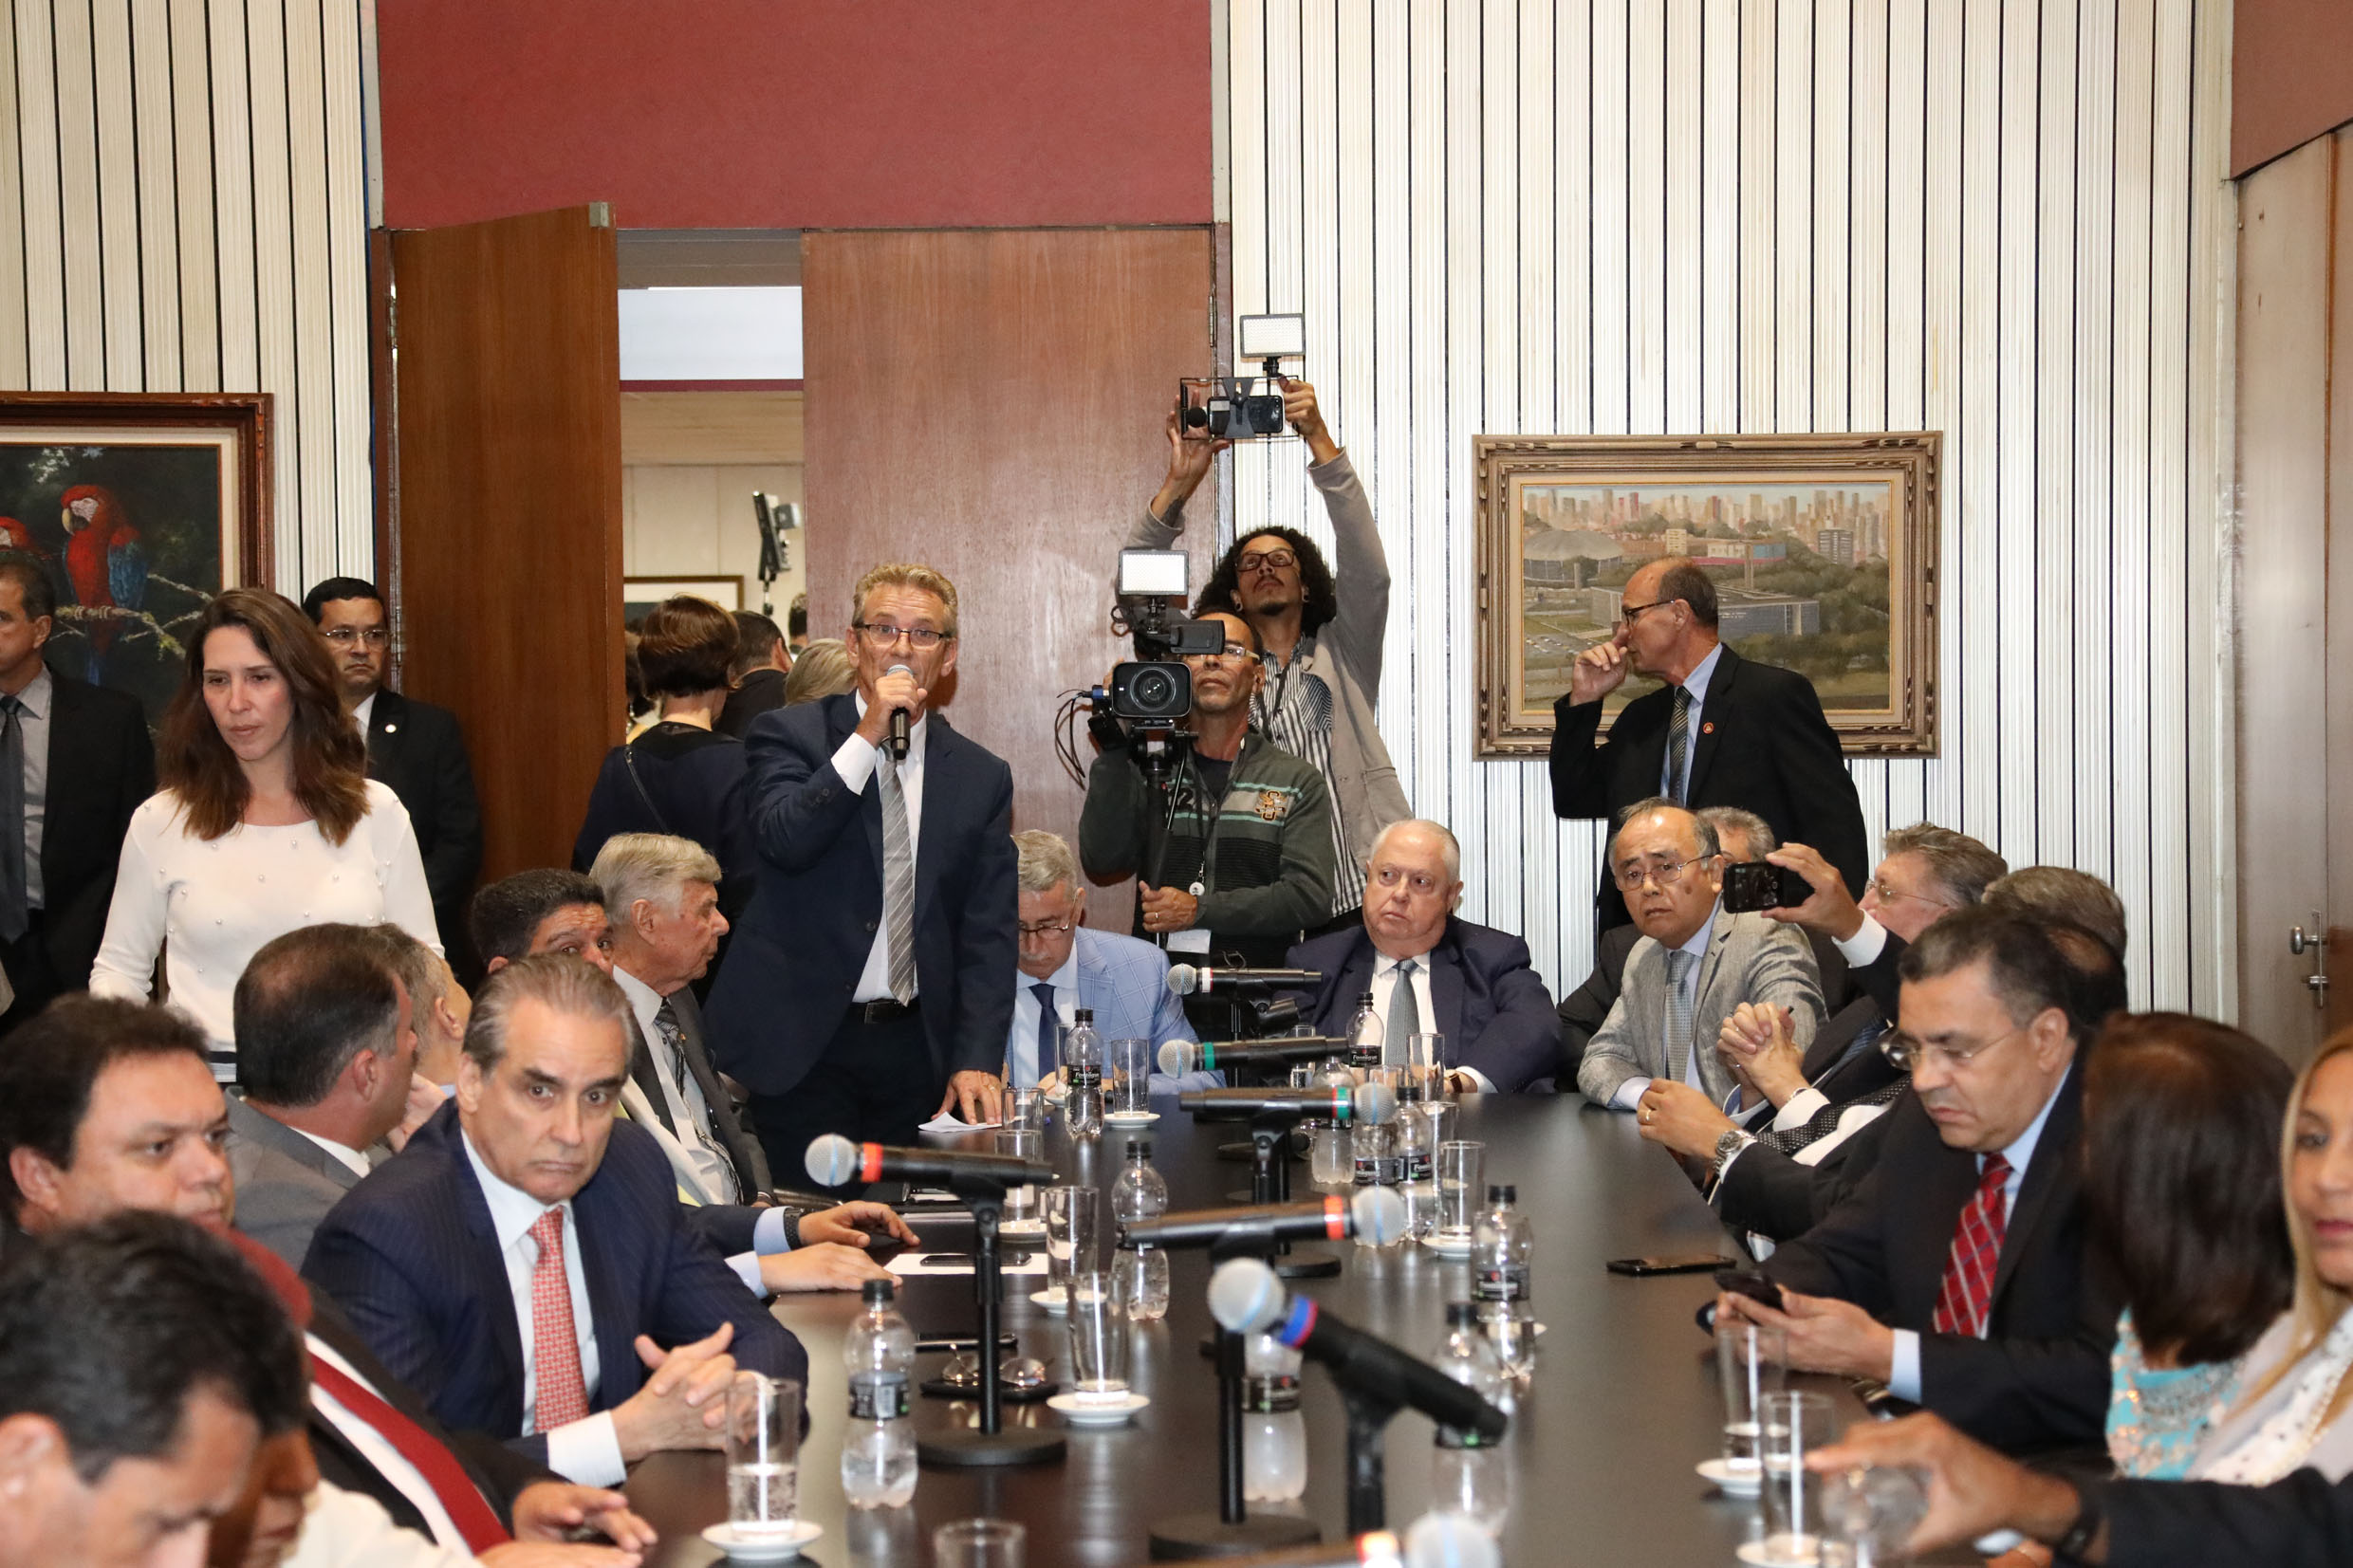 Visita do Governador <a style='float:right' href='https://www3.al.sp.gov.br/repositorio/noticia/N-02-2019/fg229883.jpg' target=_blank><img src='/_img/material-file-download-white.png' width='14px' alt='Clique para baixar a imagem'></a>